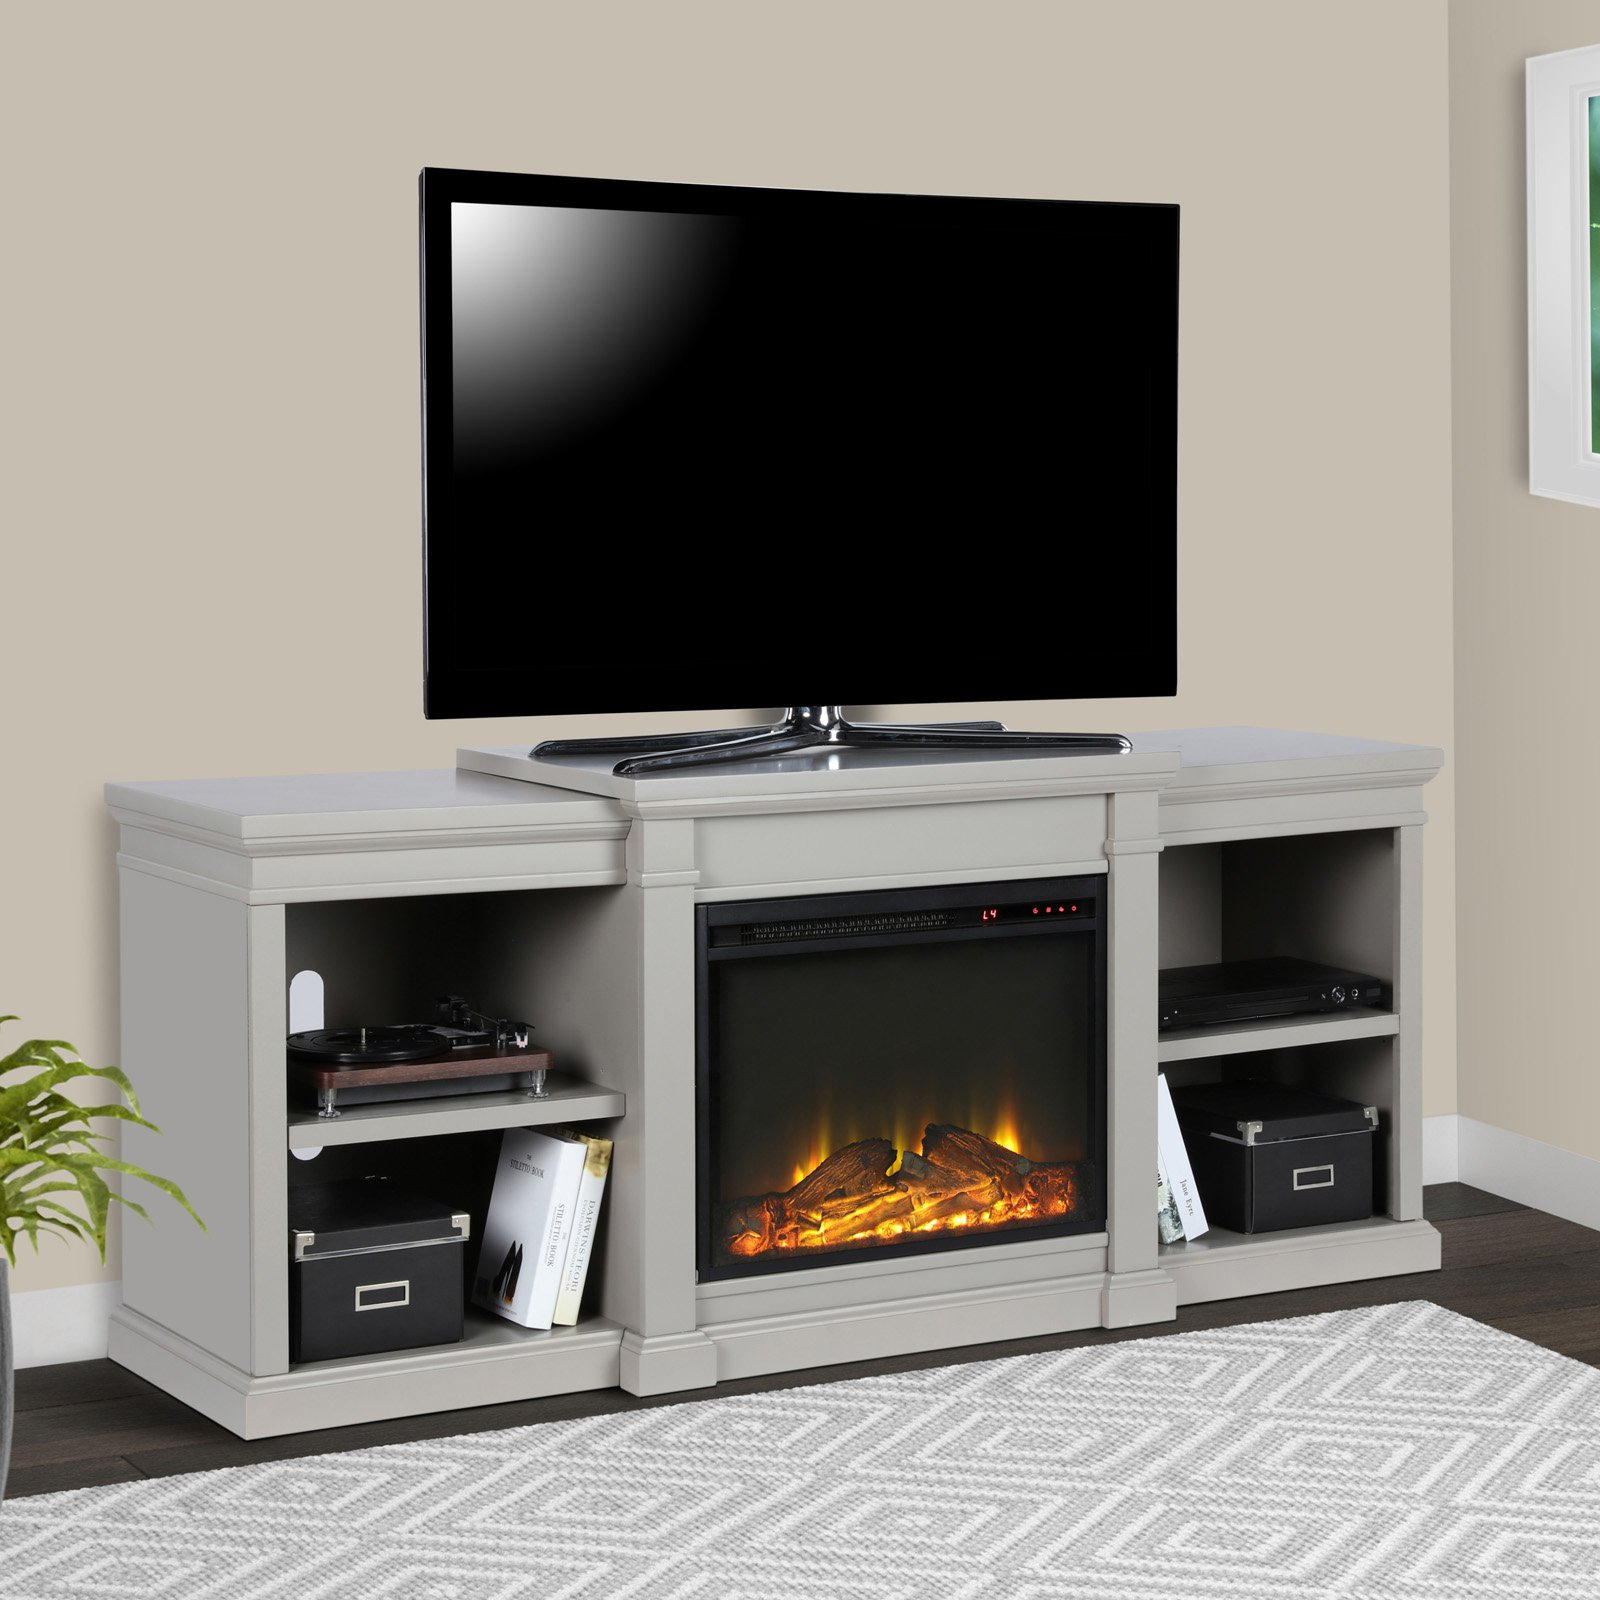 "Ameriwood Home Manchester Electric Fireplace TV Stand for TVs up to 70"", Multiple Colors"